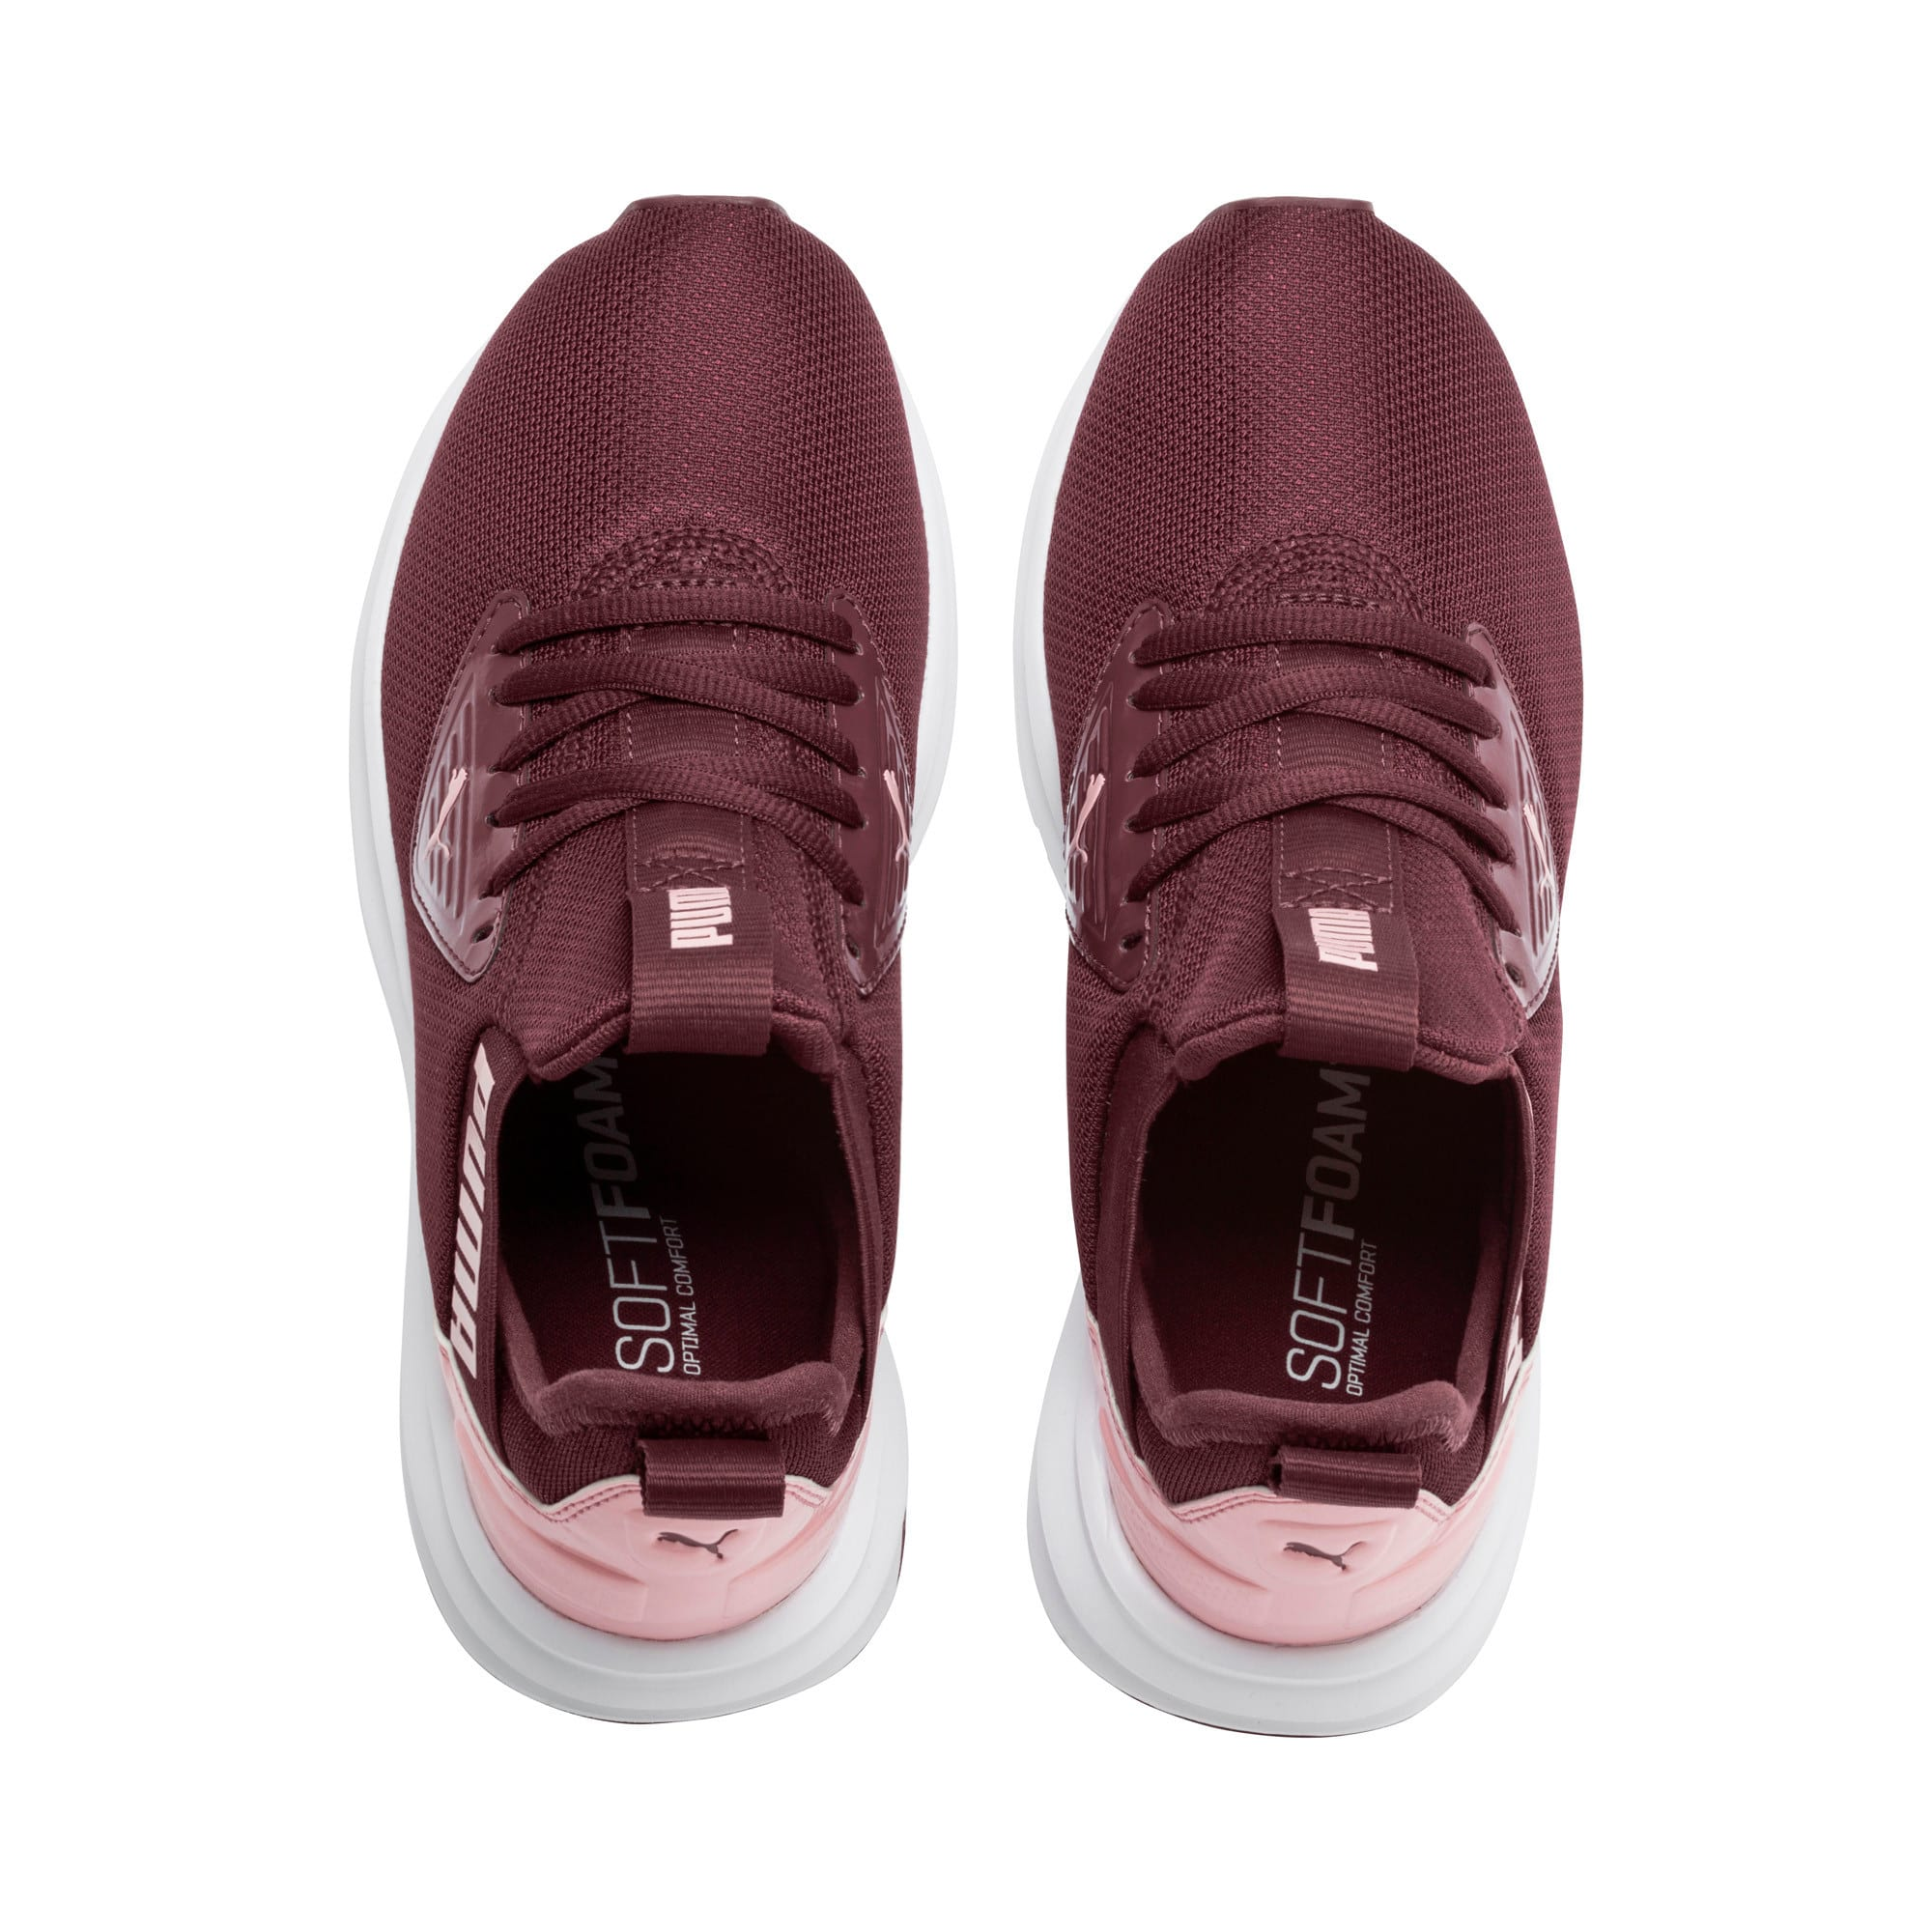 Thumbnail 6 of Enzo Beta Shine Sneakers JR, Vineyard Wine-Bridal Rose, medium